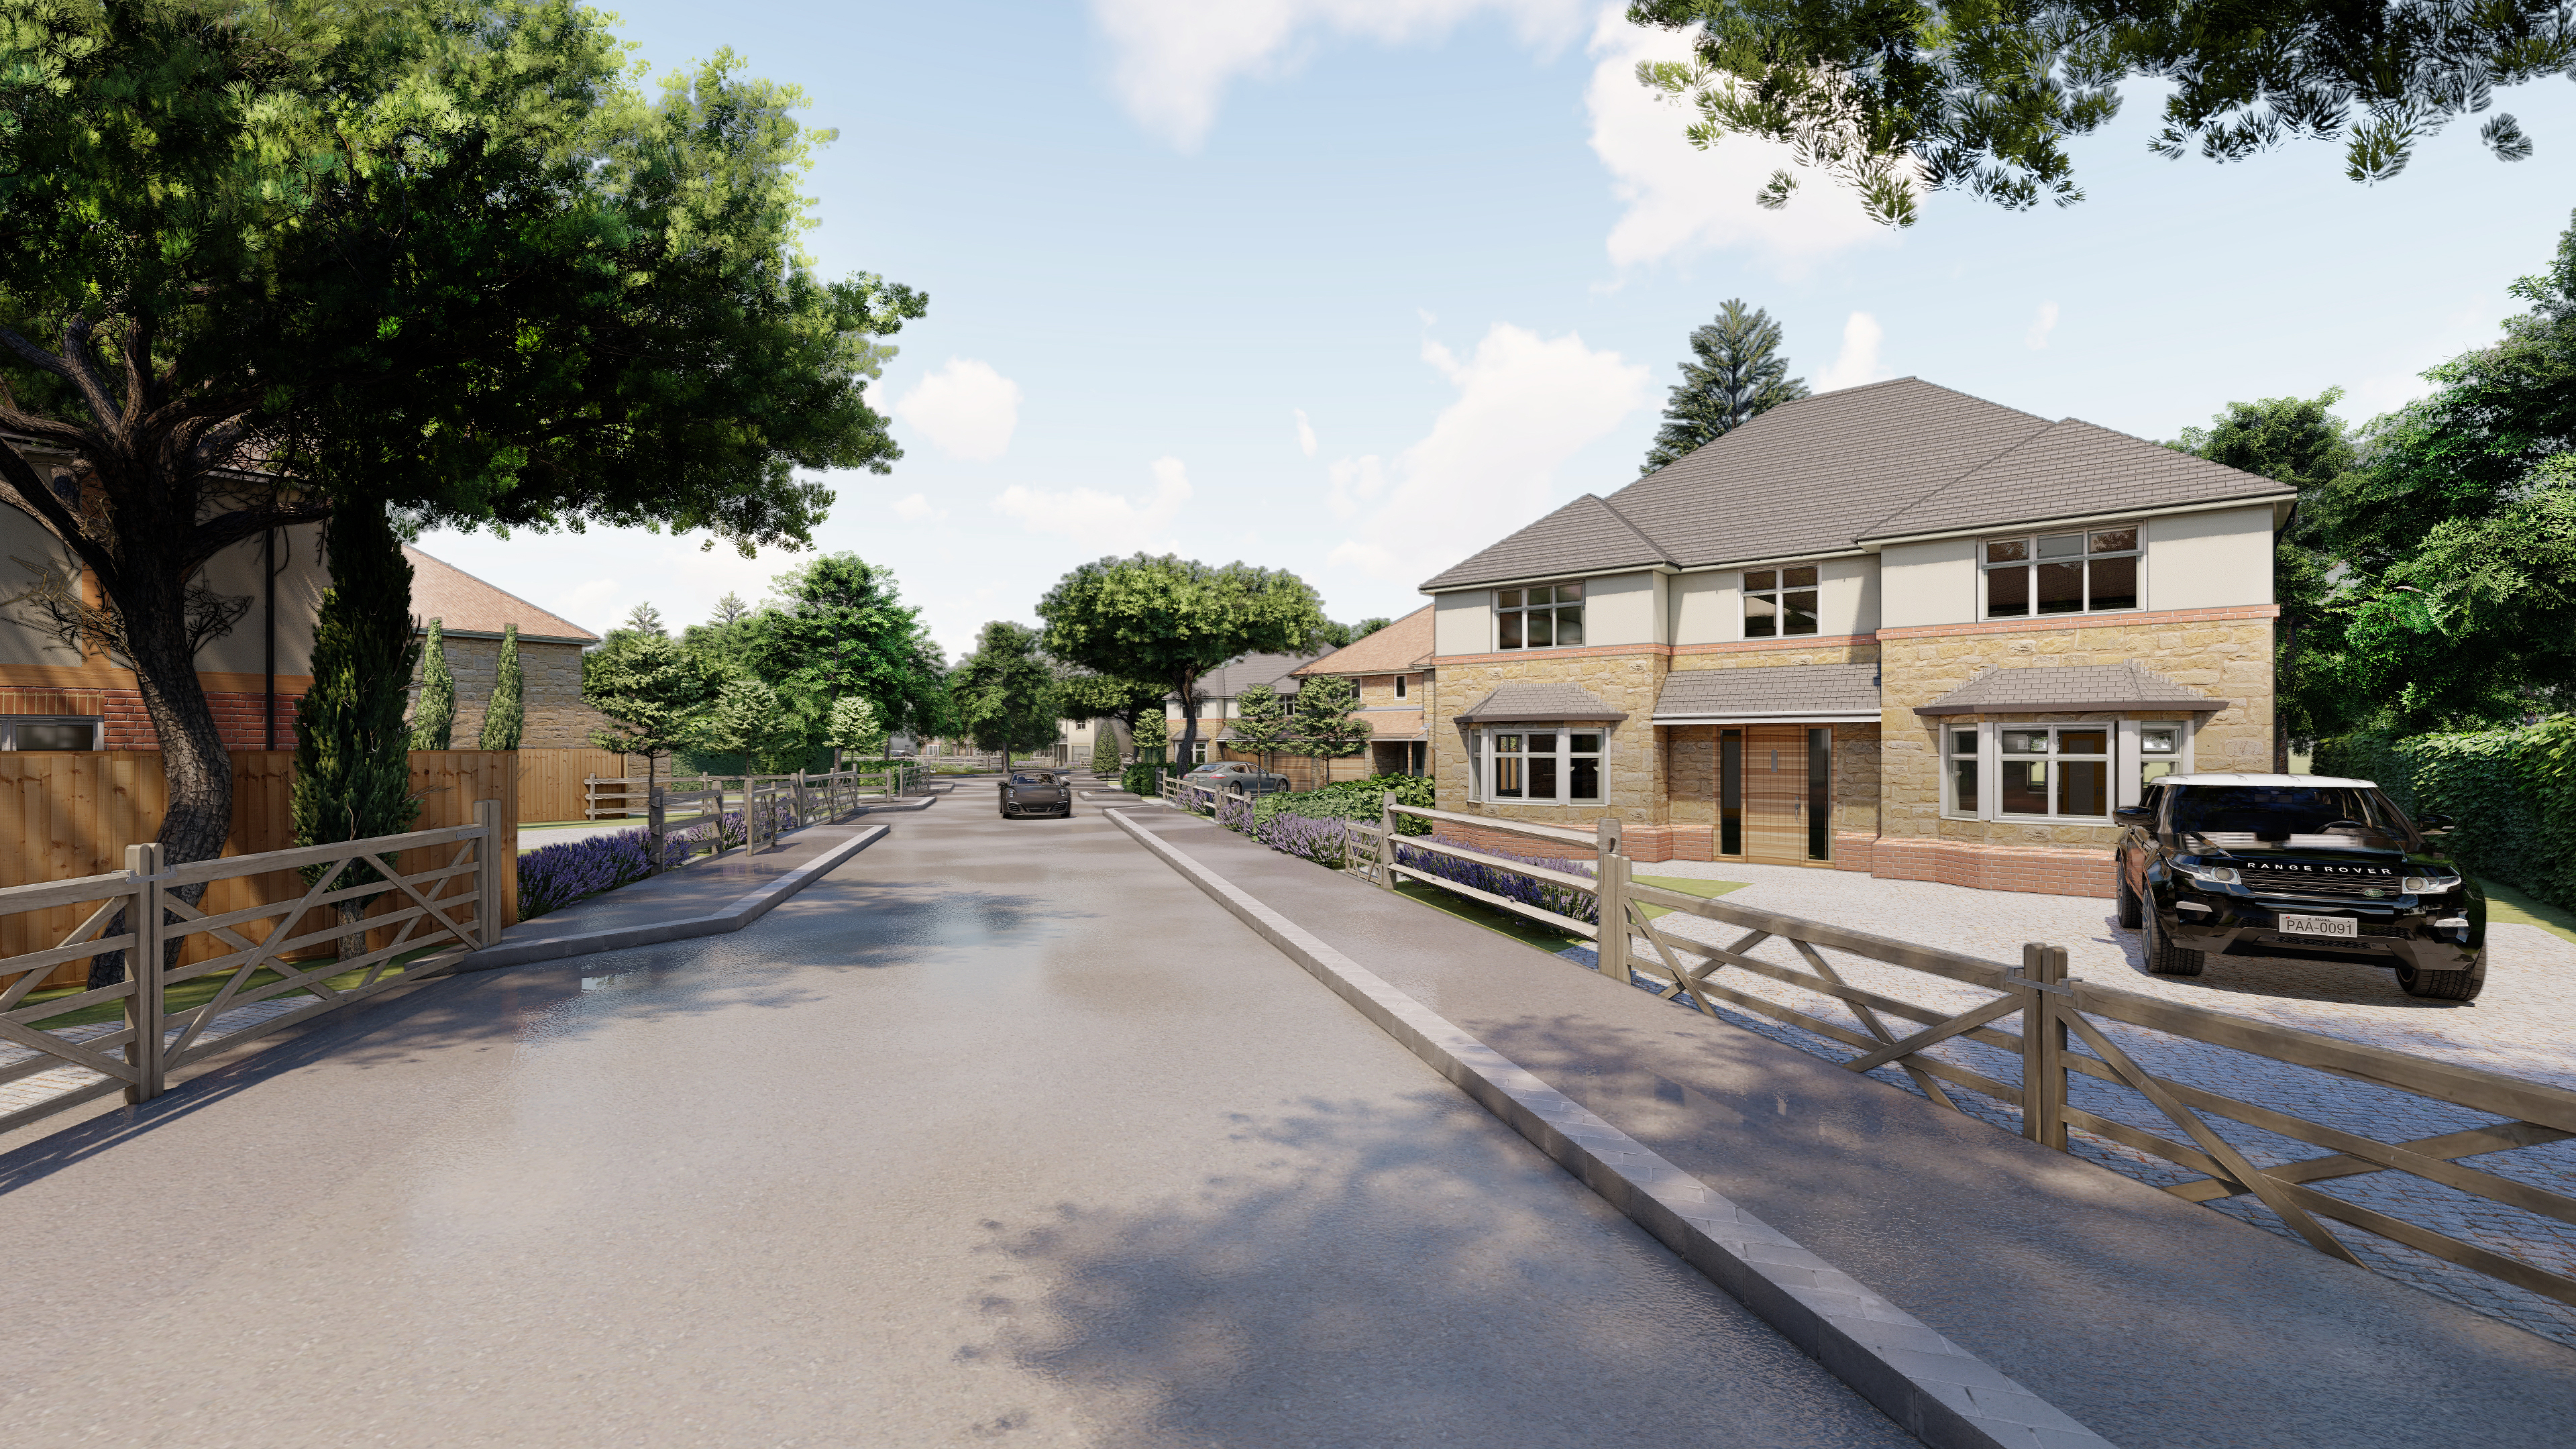 EXTERNAL CONCEPT IMAGE 2 - Hemwood Dell,